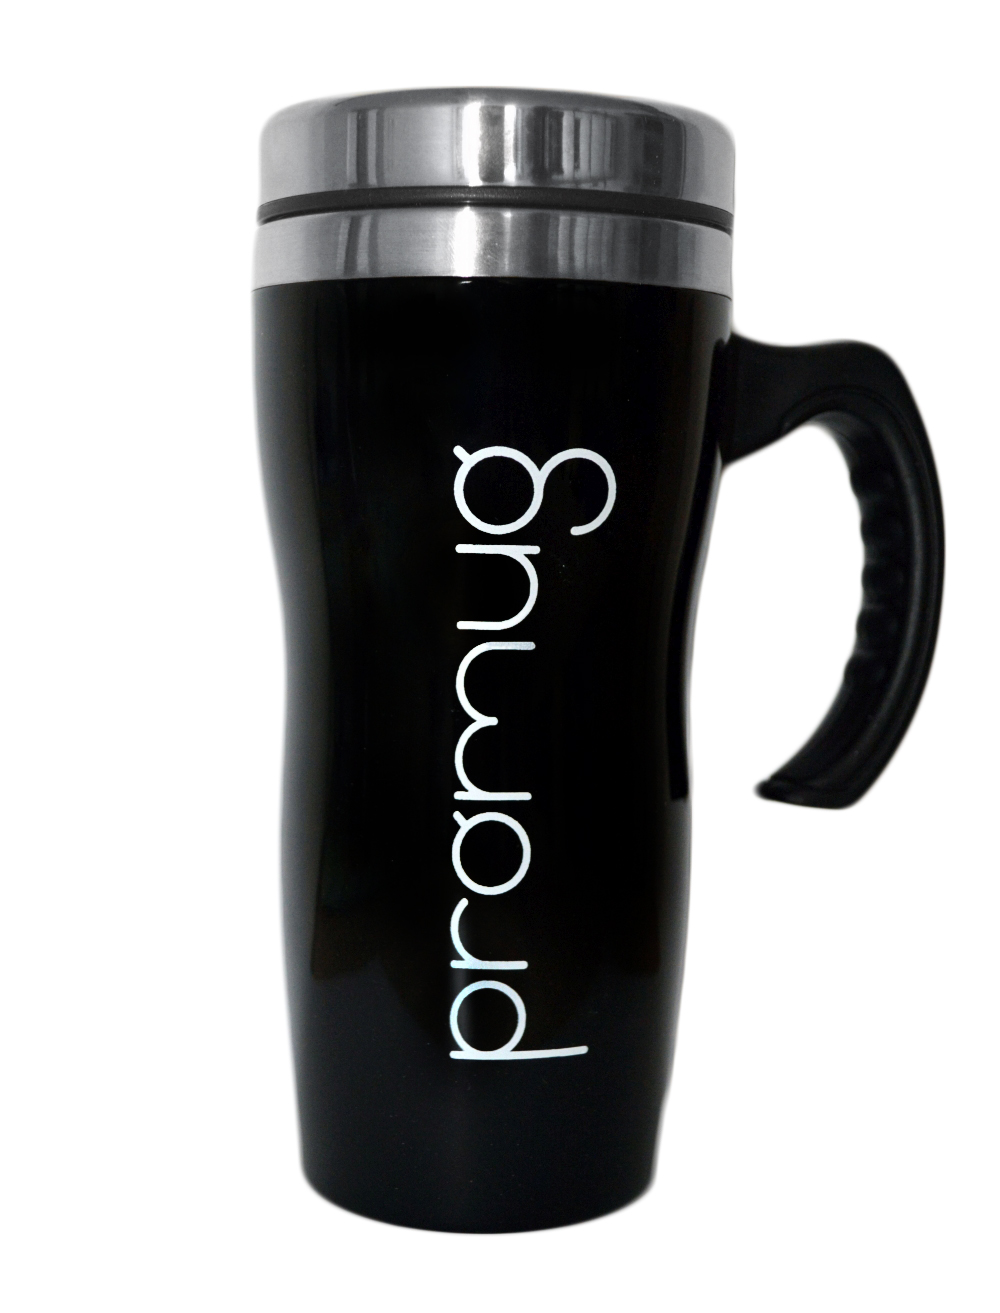 Coffee or Tea – It's the Promug Cup for Me!